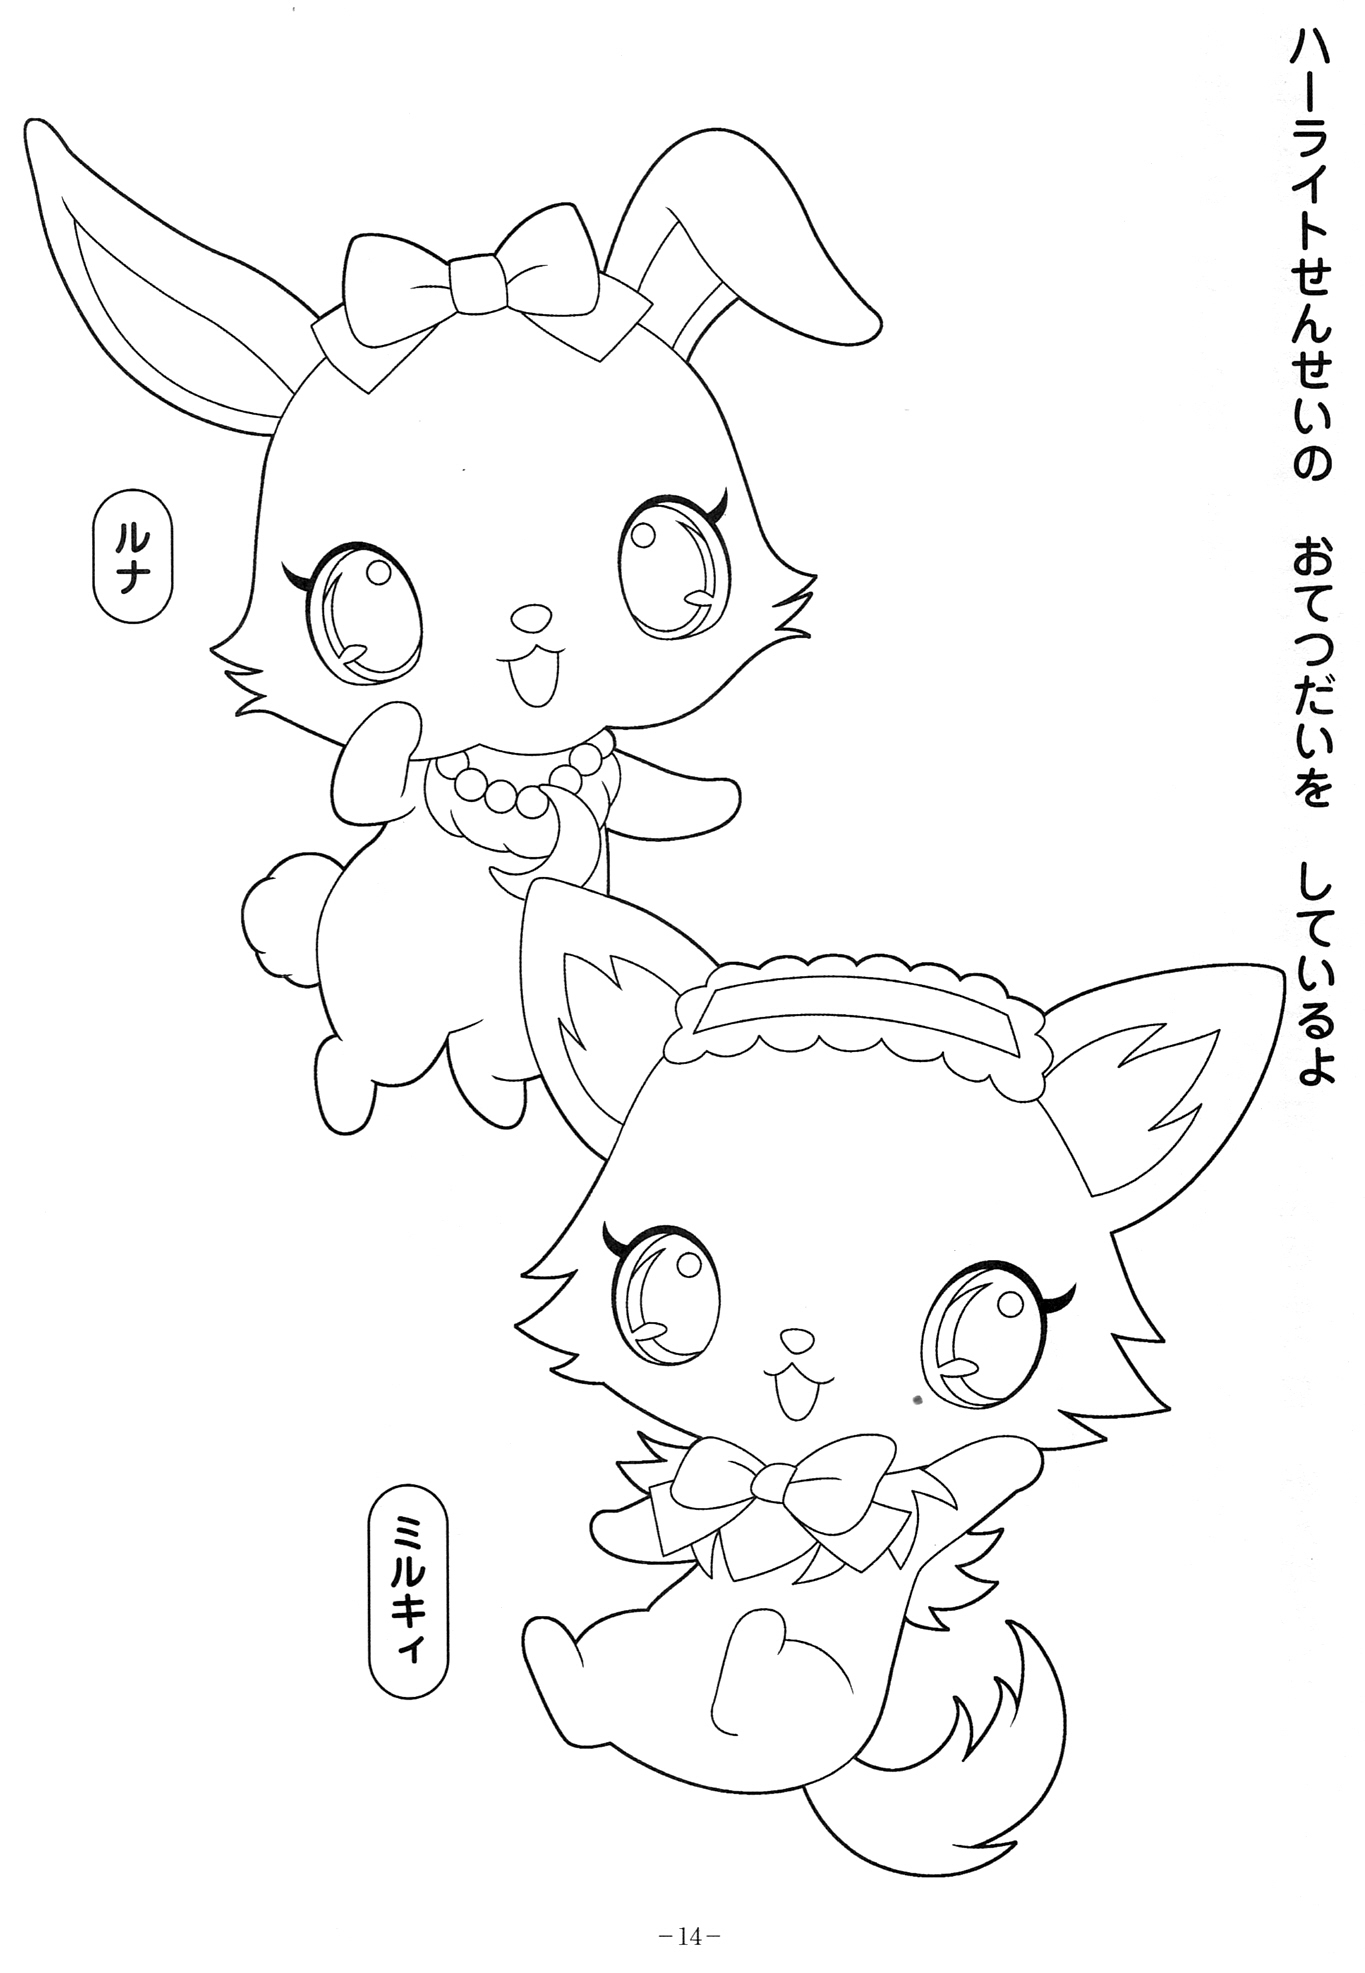 Jewel Pet Coloring Pages : ぬりえランド 無料 : 無料